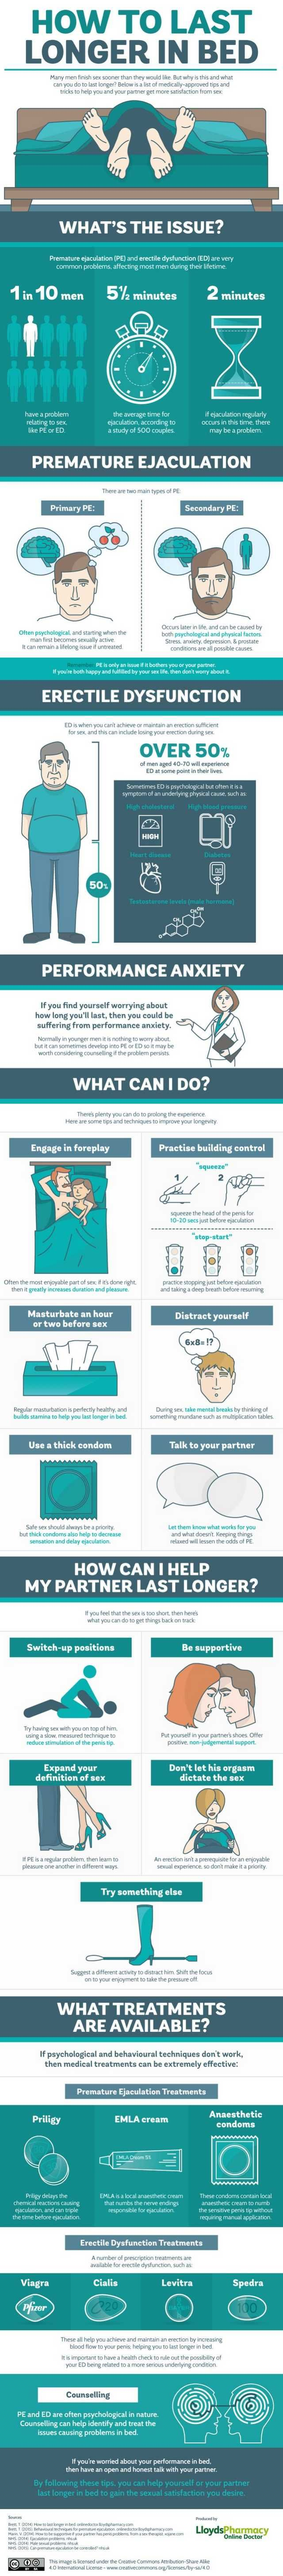 Guide to lasting longer in bed - Imgur